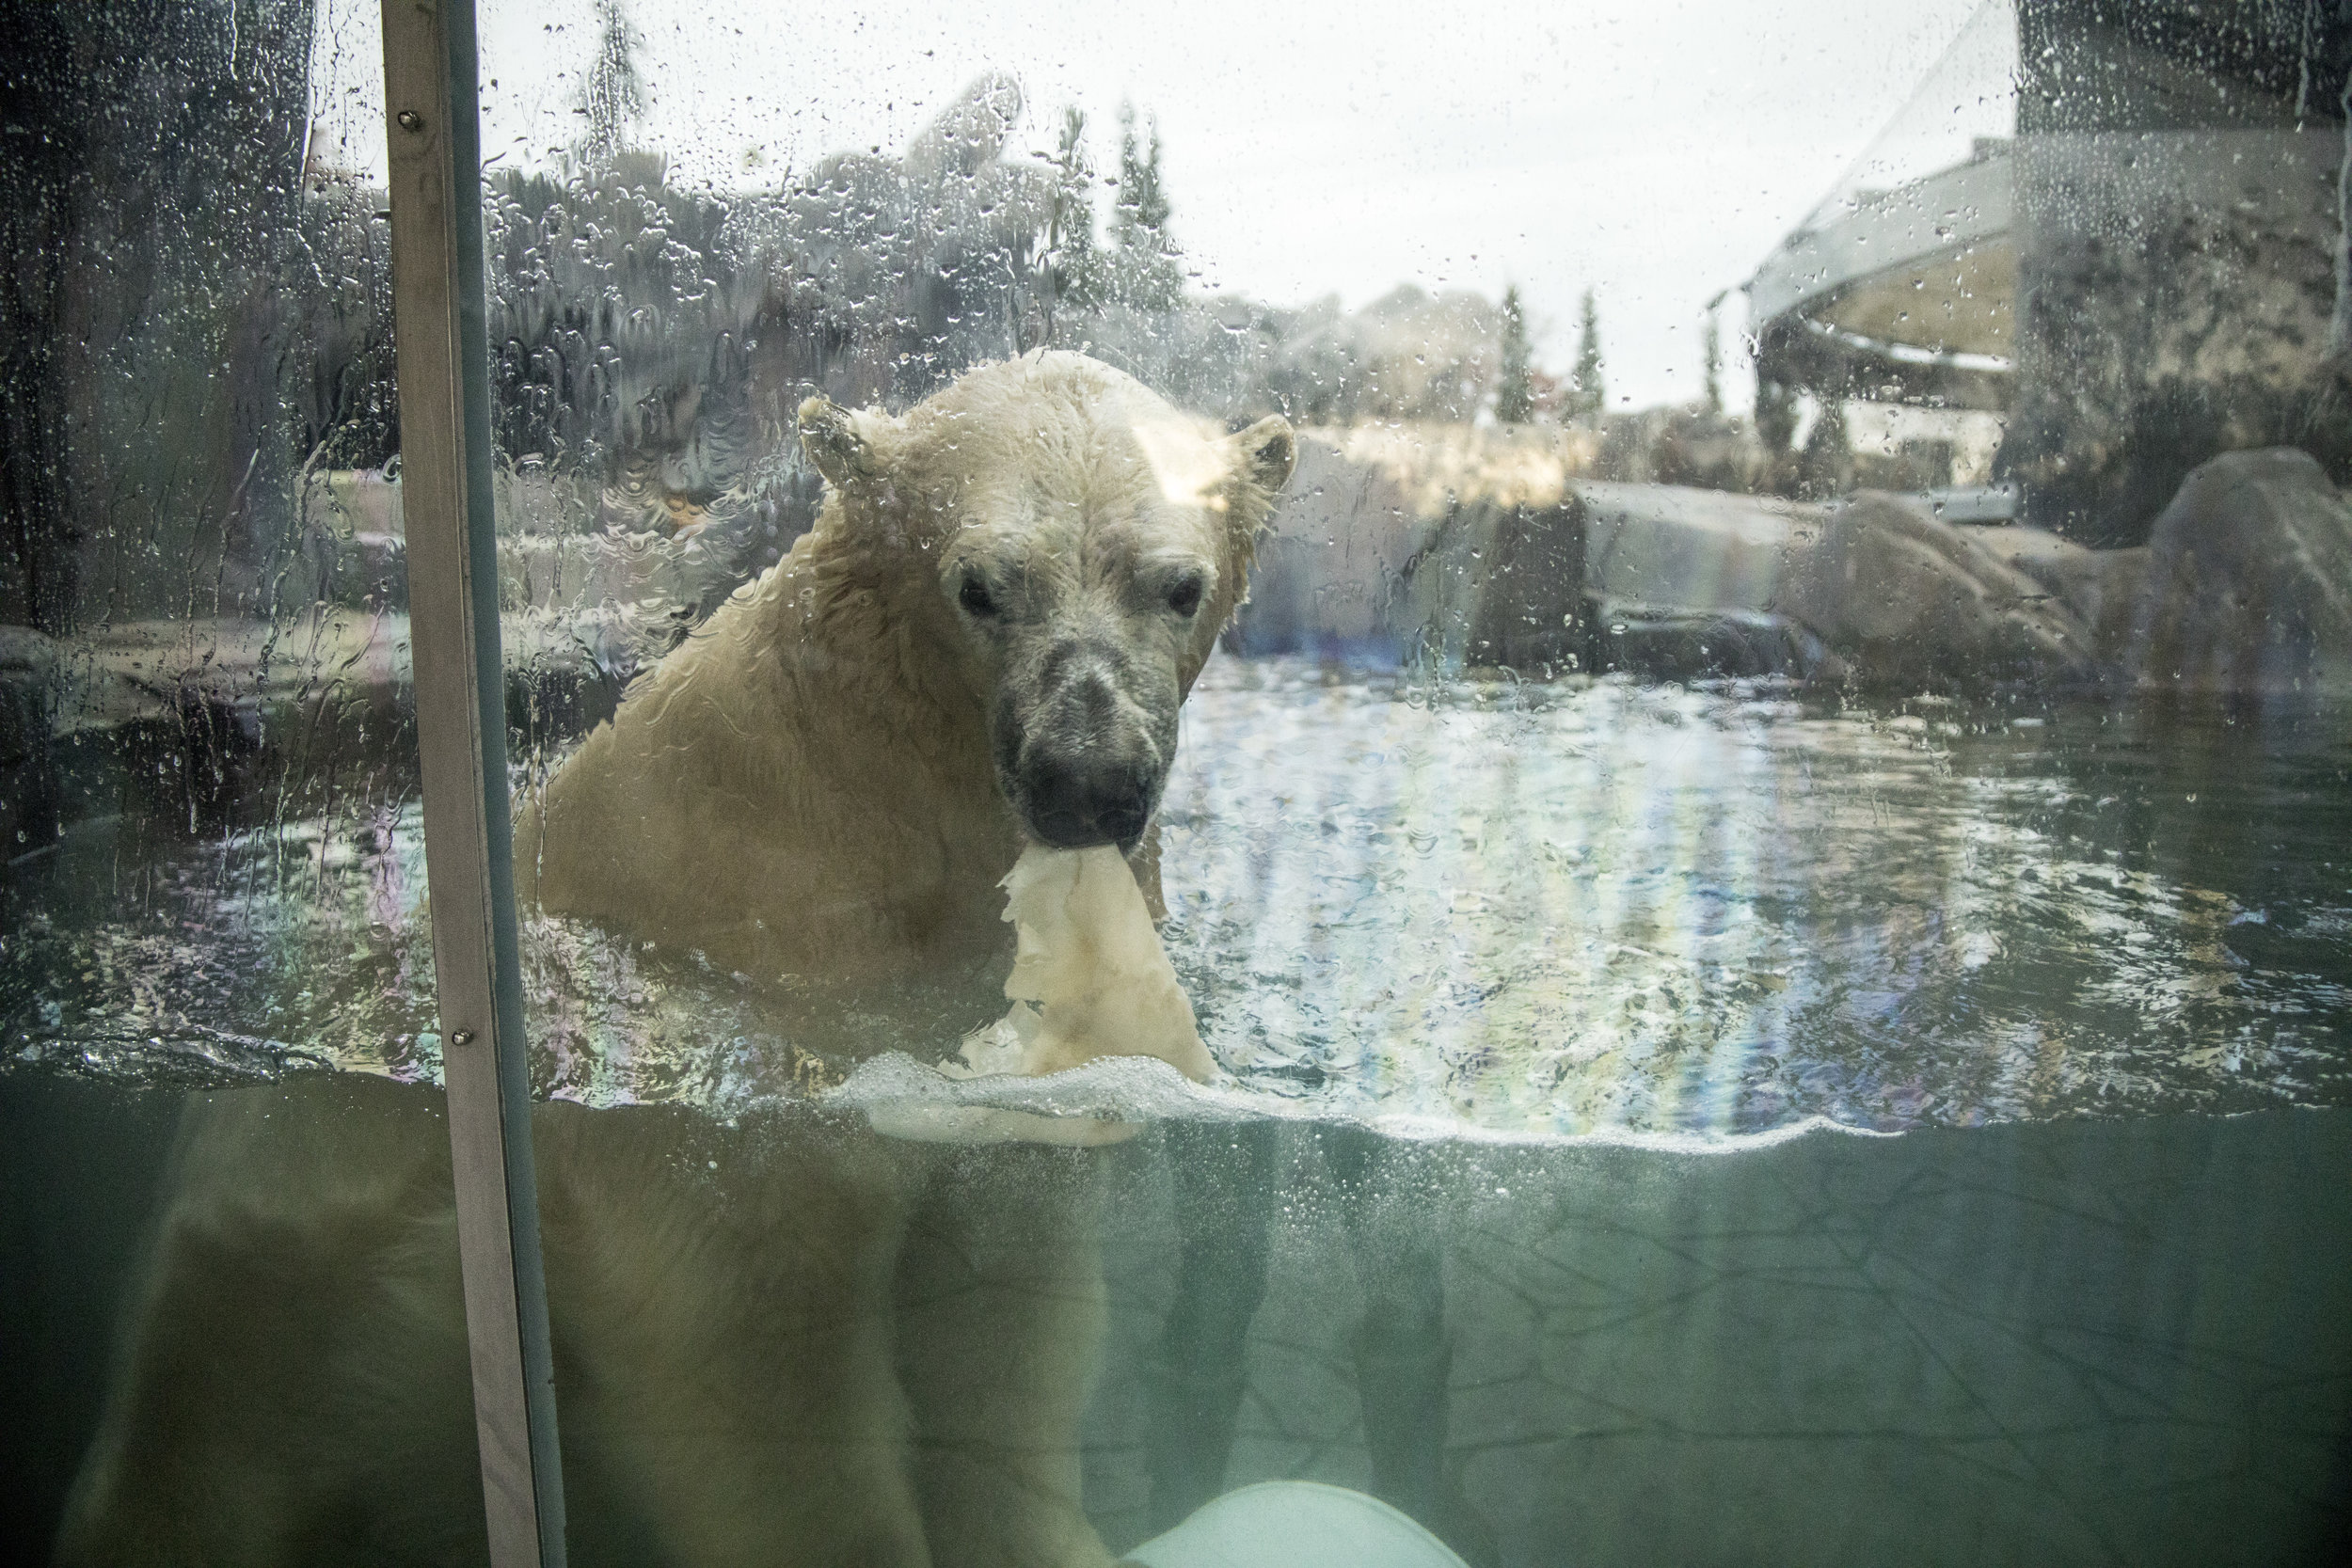 Saint_Louis_Zoo_Polar_Bear_3.jpg